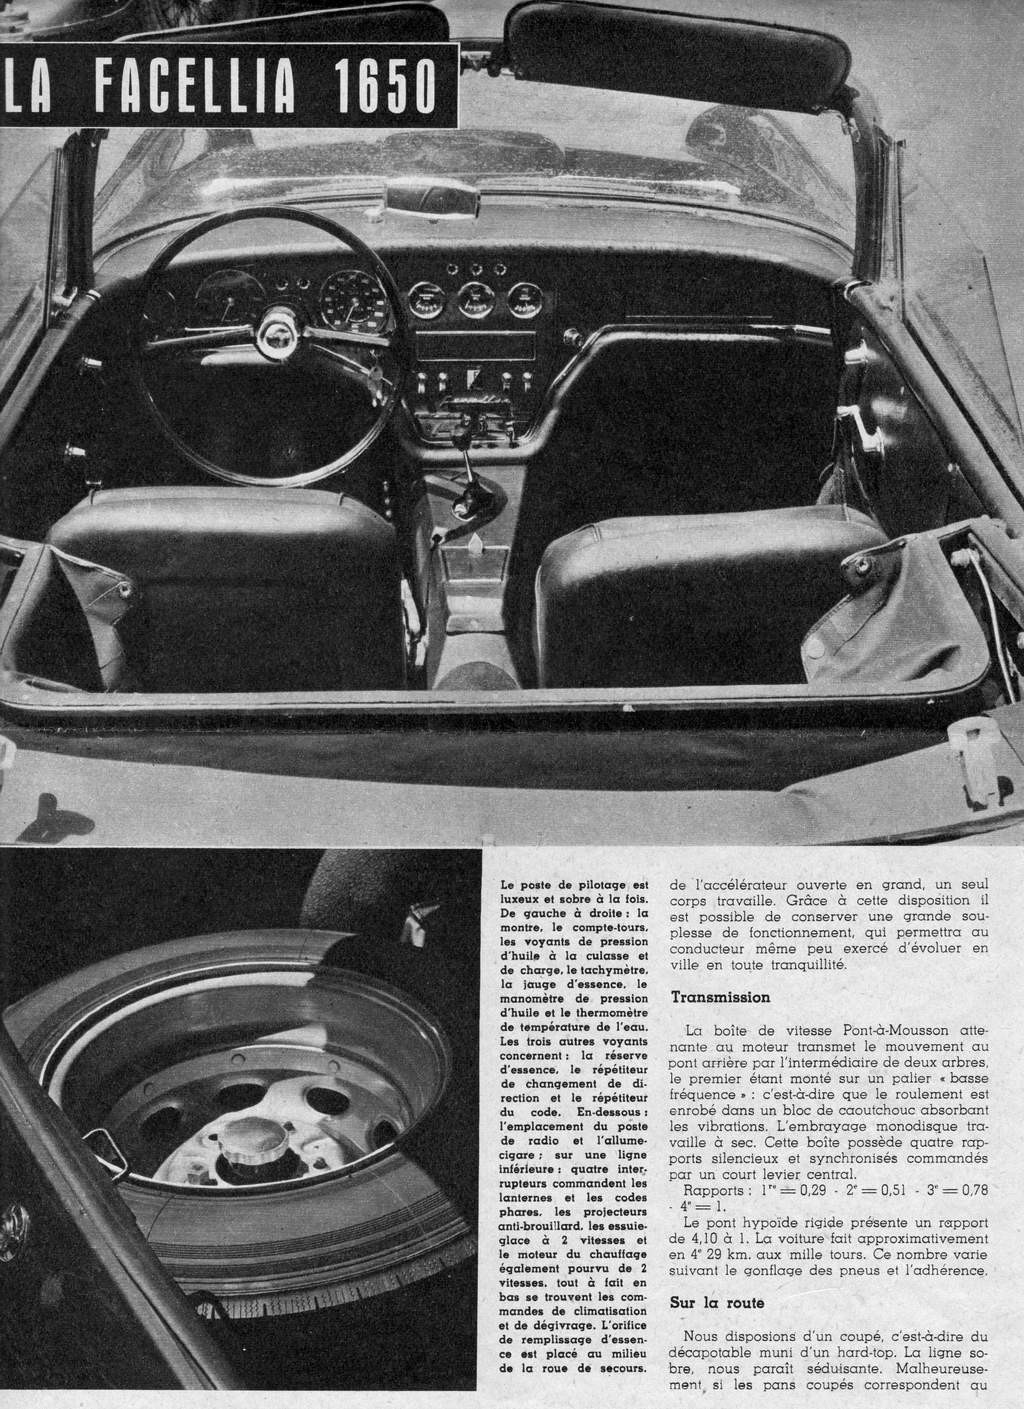 Test Facellia Fa Automobile 1960 p4-7 Epson NGxga